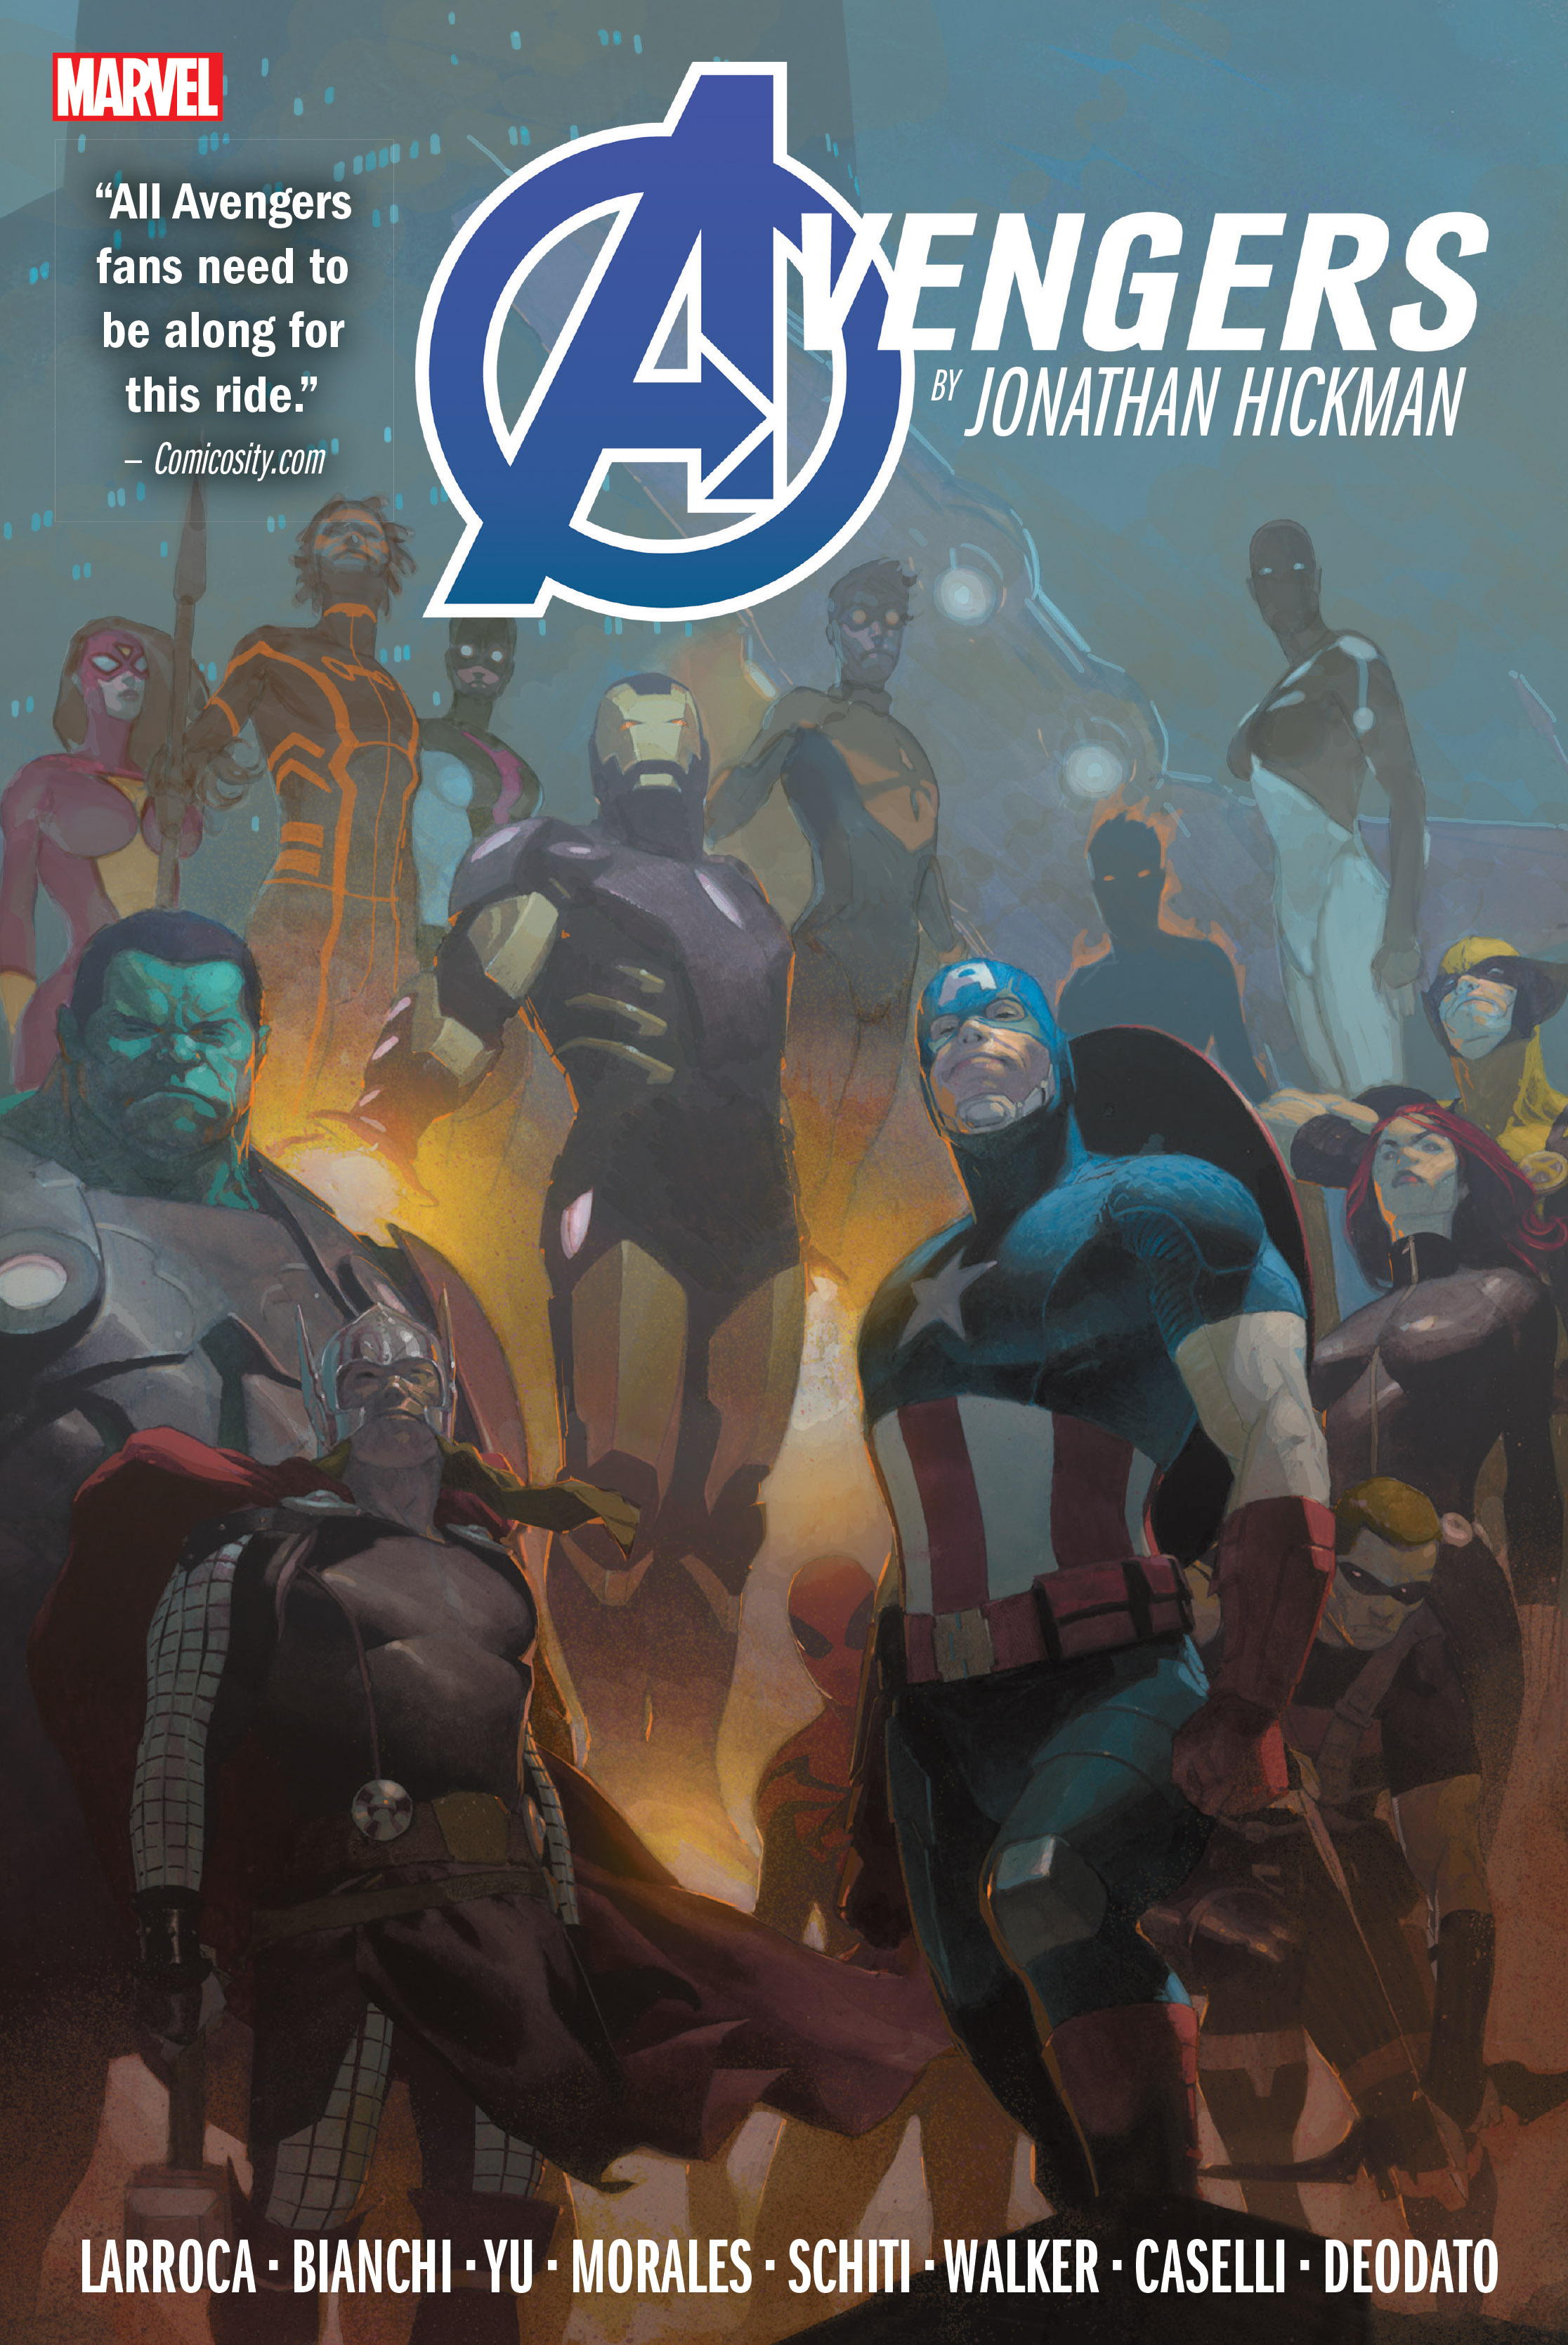 Avengers By Jonathan Hickman Omnibus Vol. 2 (Hardcover)